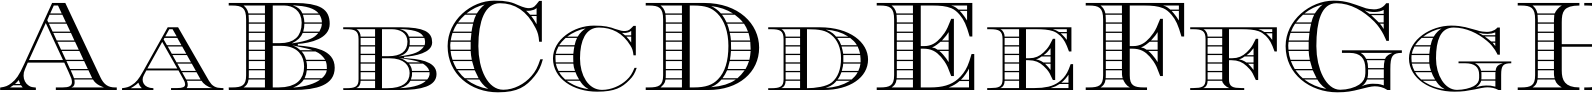 Engravers DT Shaded Font